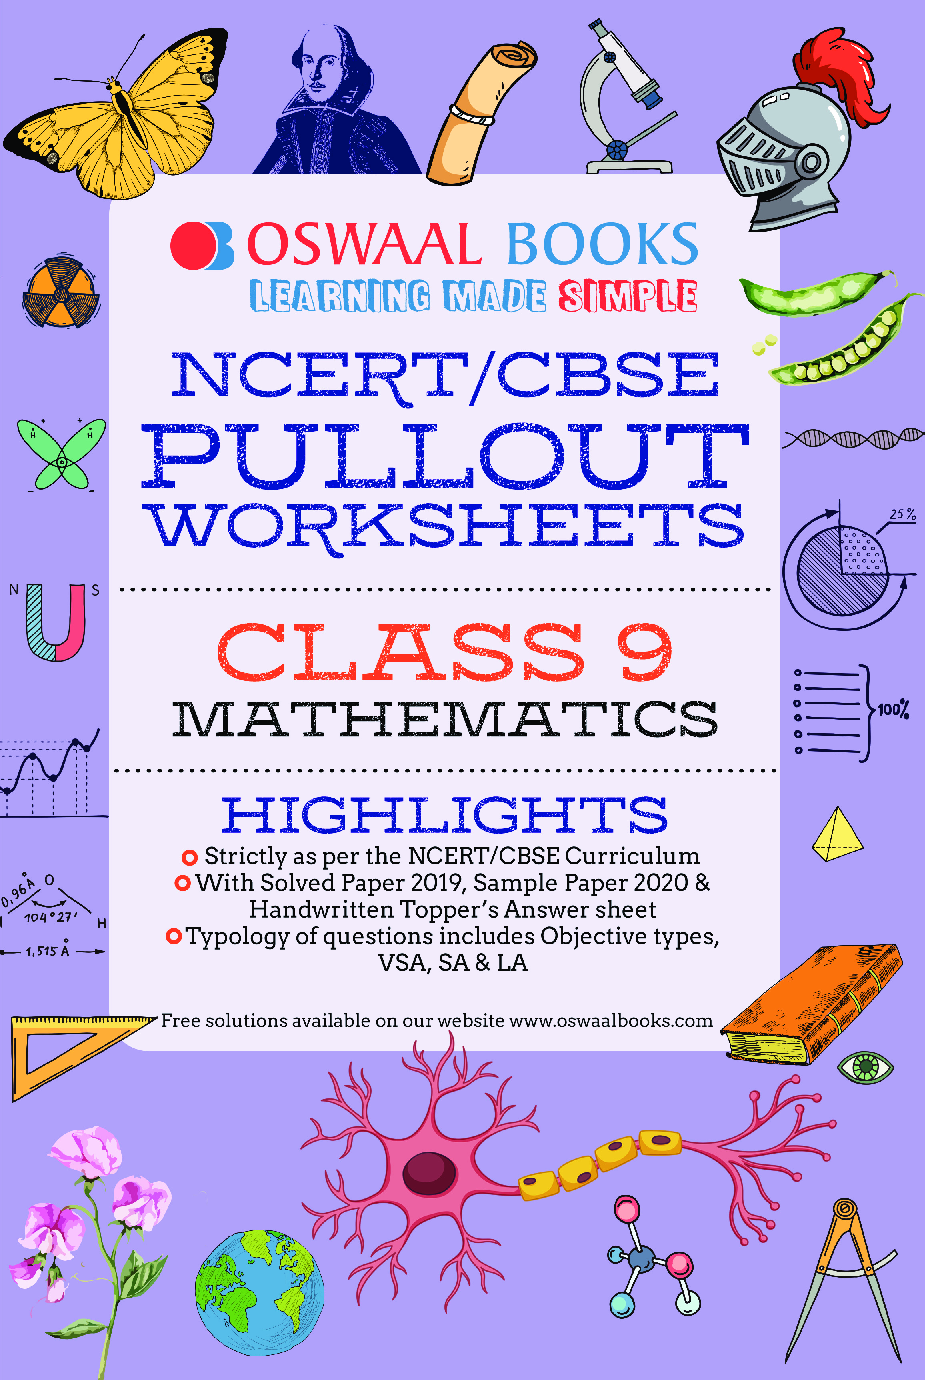 Oswaal NCERT & CBSE Pullout Worksheets For Class - IX Mathematics (March 2021 Exam) - Page 1